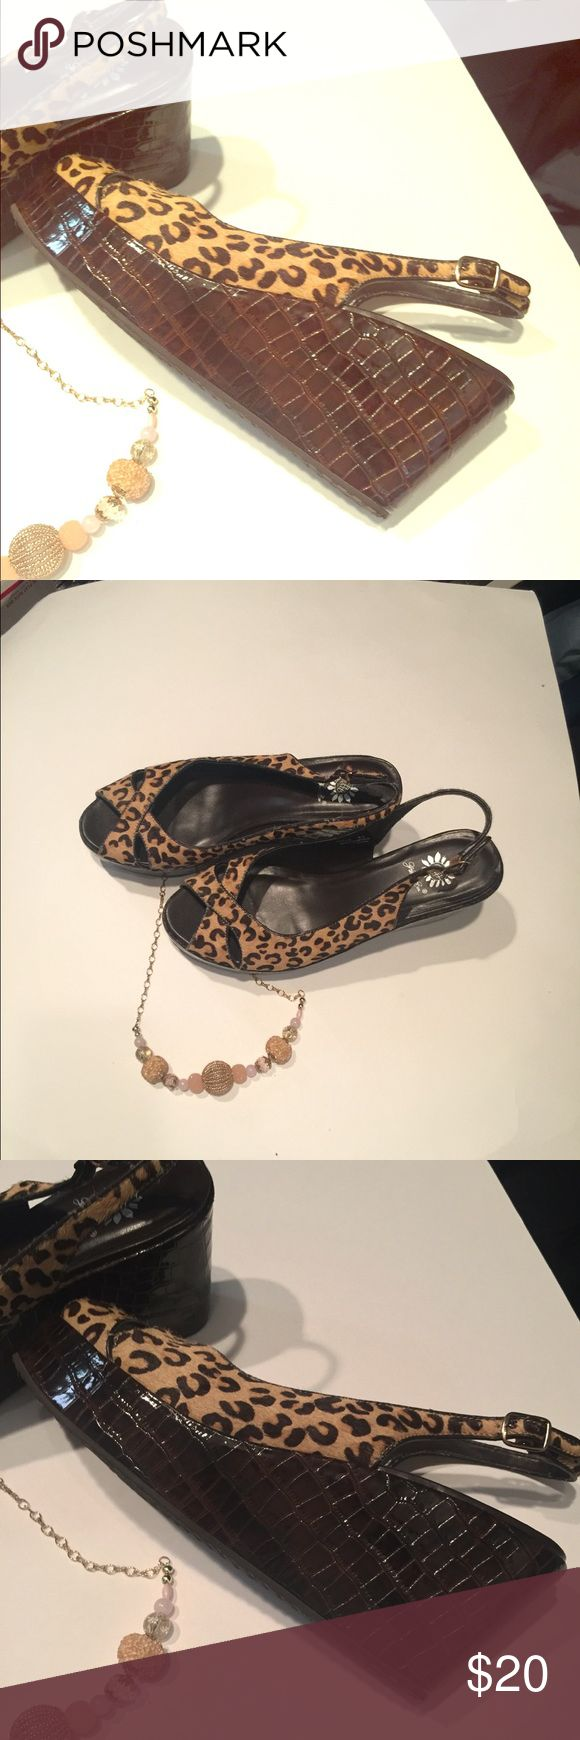 """👡🐯leopard wedges☺️ Eye catching leopard wedges with strap.  3"""" wedge and roomy 🌸slight scuffs on top of shoe and strap due to wear (shown in pics)💐 Yellow Box Shoes Wedges"""